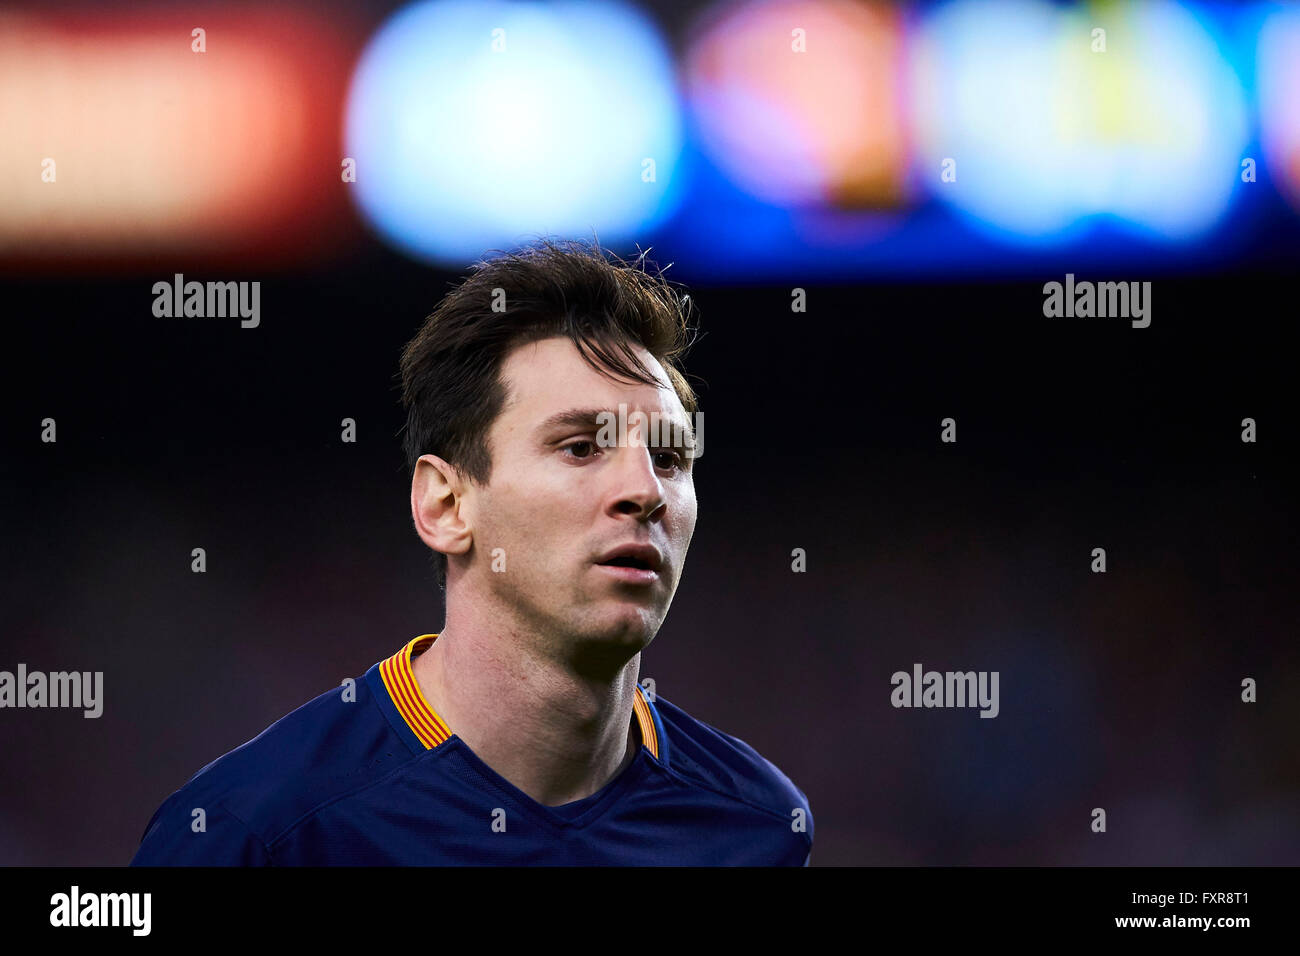 Lionel Messi (FC Barcelona), during La Liga soccer match between FC Barcelona and Valencia CF, at the Camp Nou stadium - Stock Image